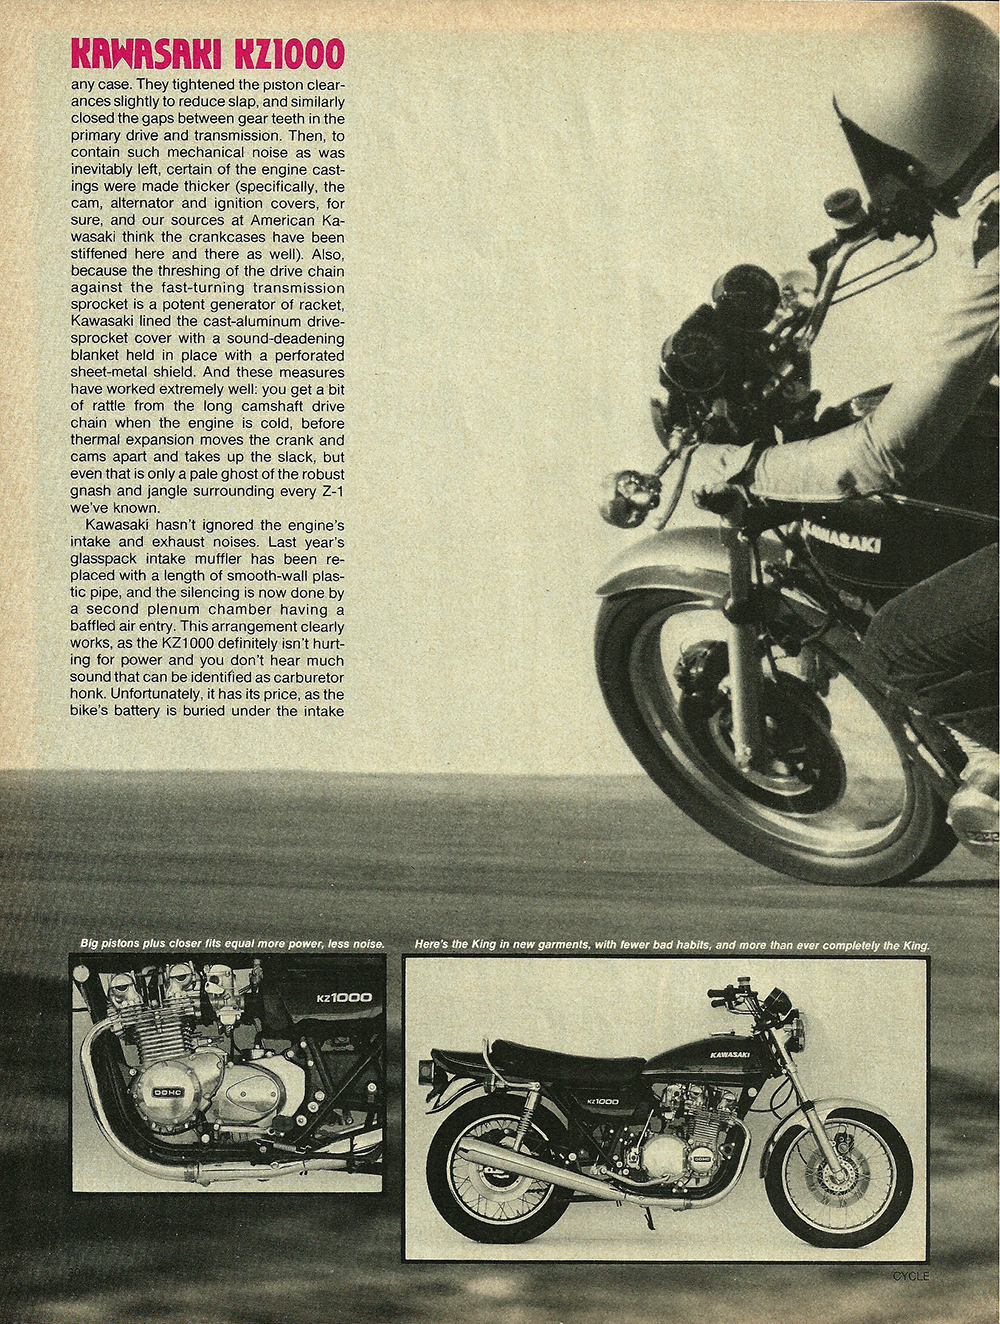 1977 Kawasaki KZ1000 road test 3.jpg